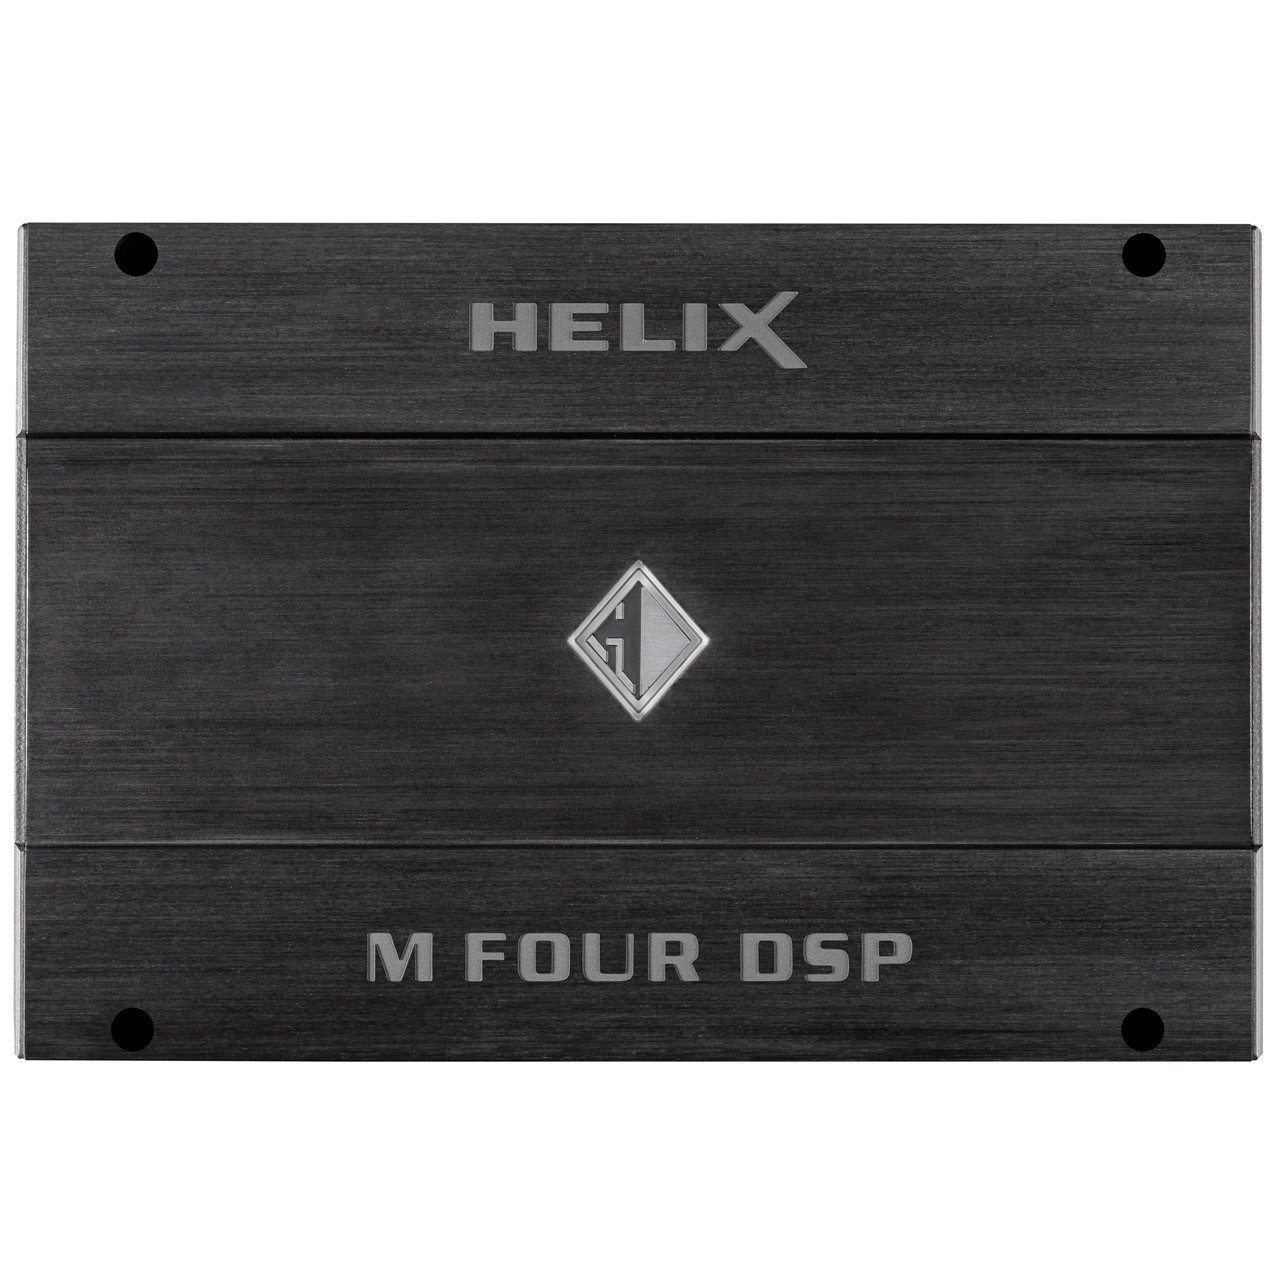 HELIX_M-FOUR-DSP_Front-top-side_1280x1280px_17-09-20